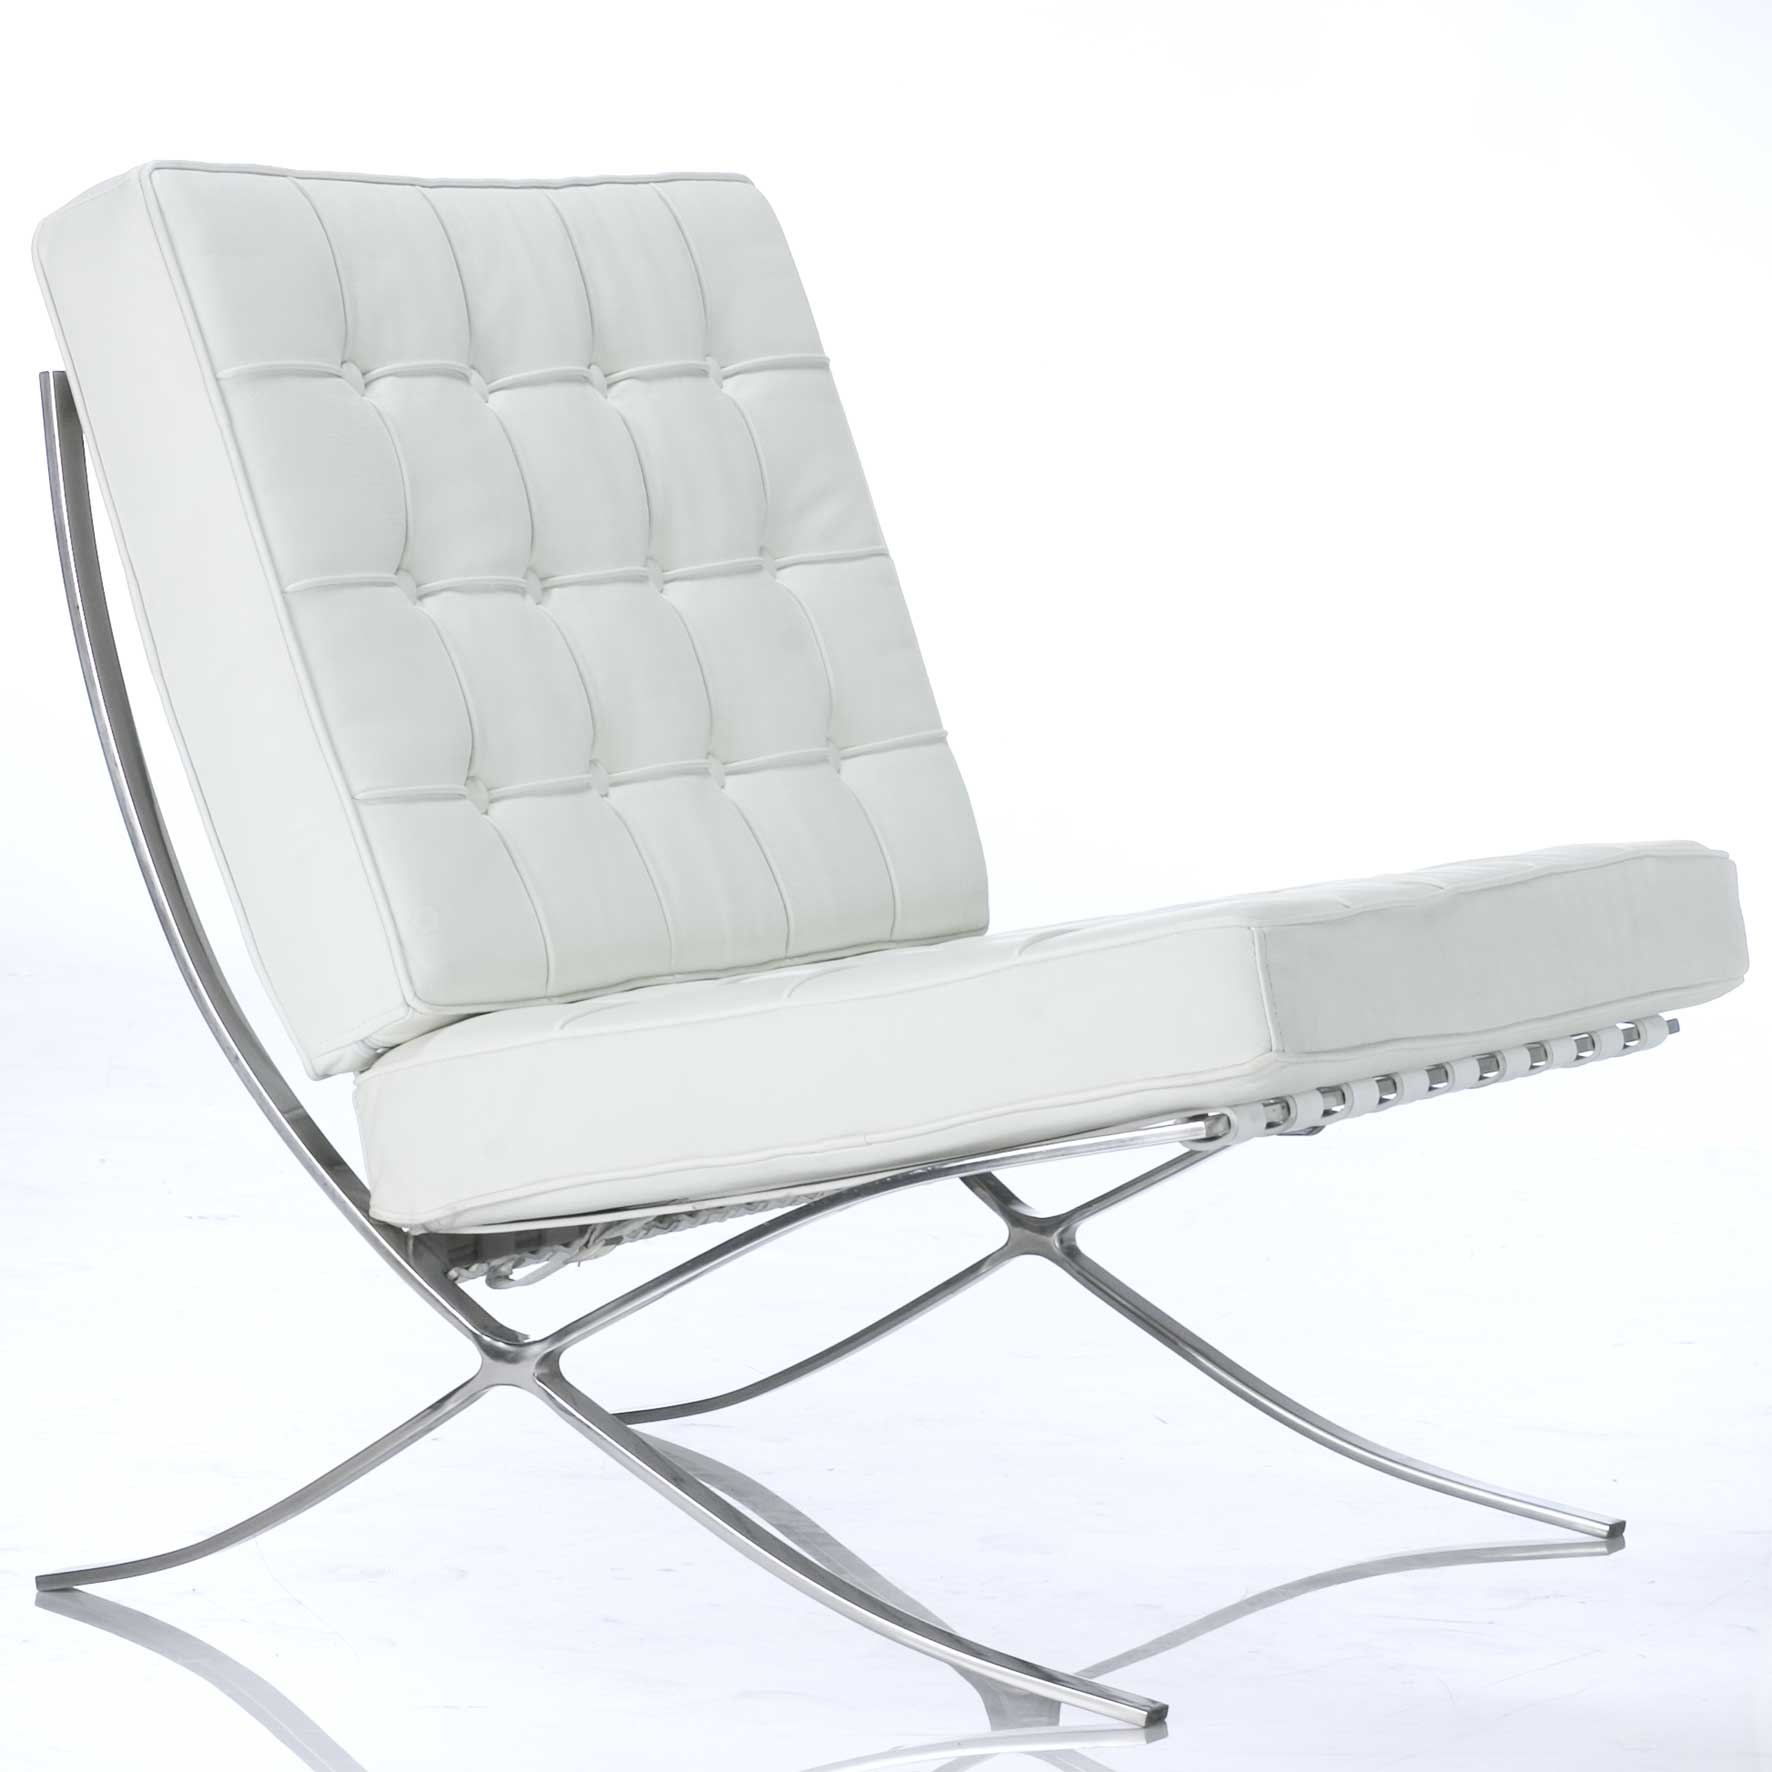 Barcelona Chair Chairs Seats Barcellona Chair Lounges Favorite Chairs